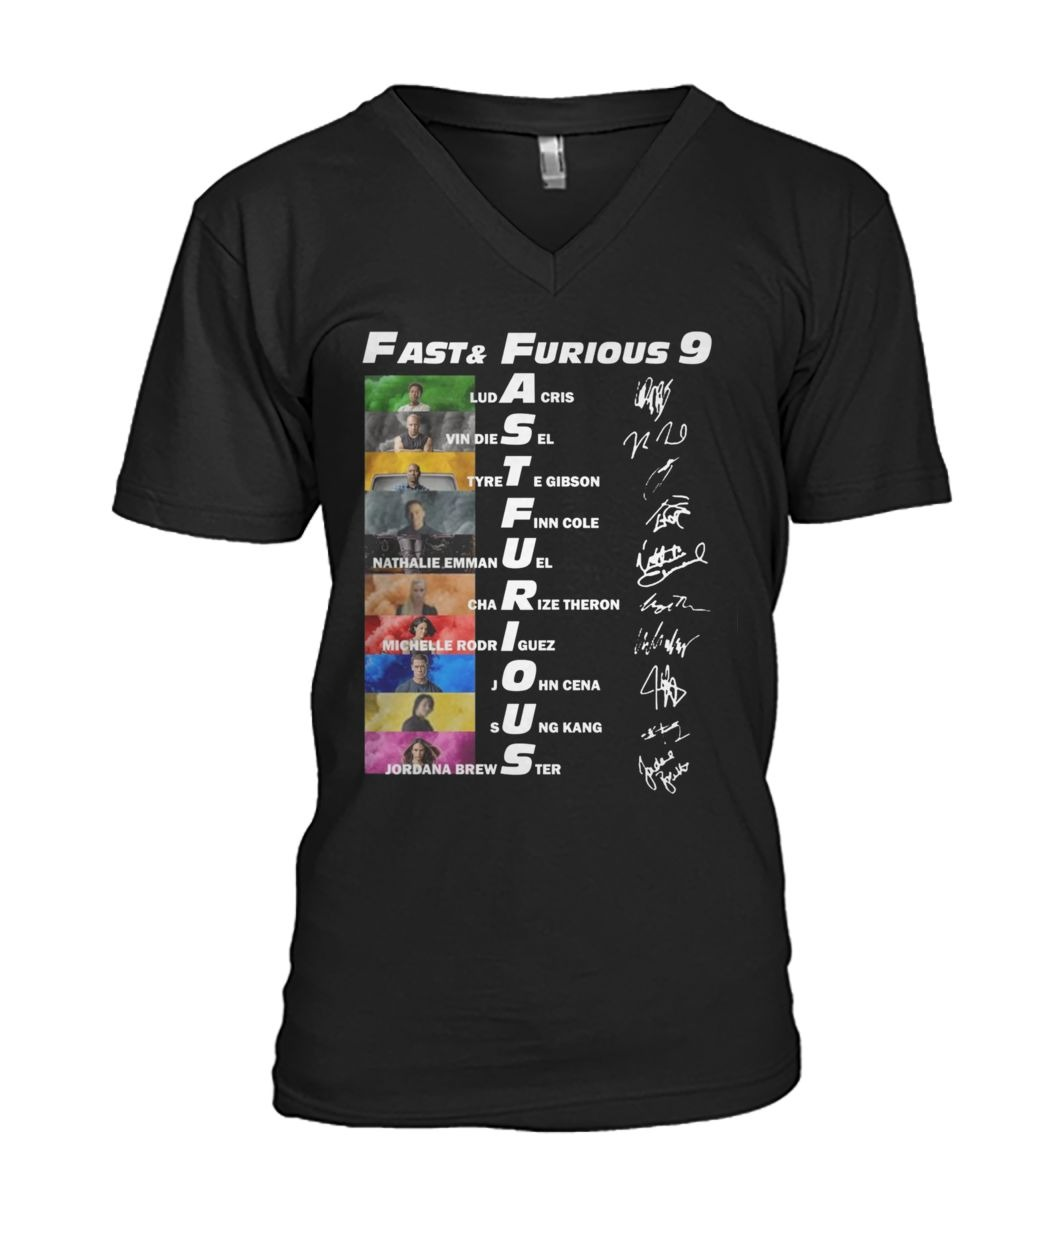 Fast and Furious 9 character signatures V-neck